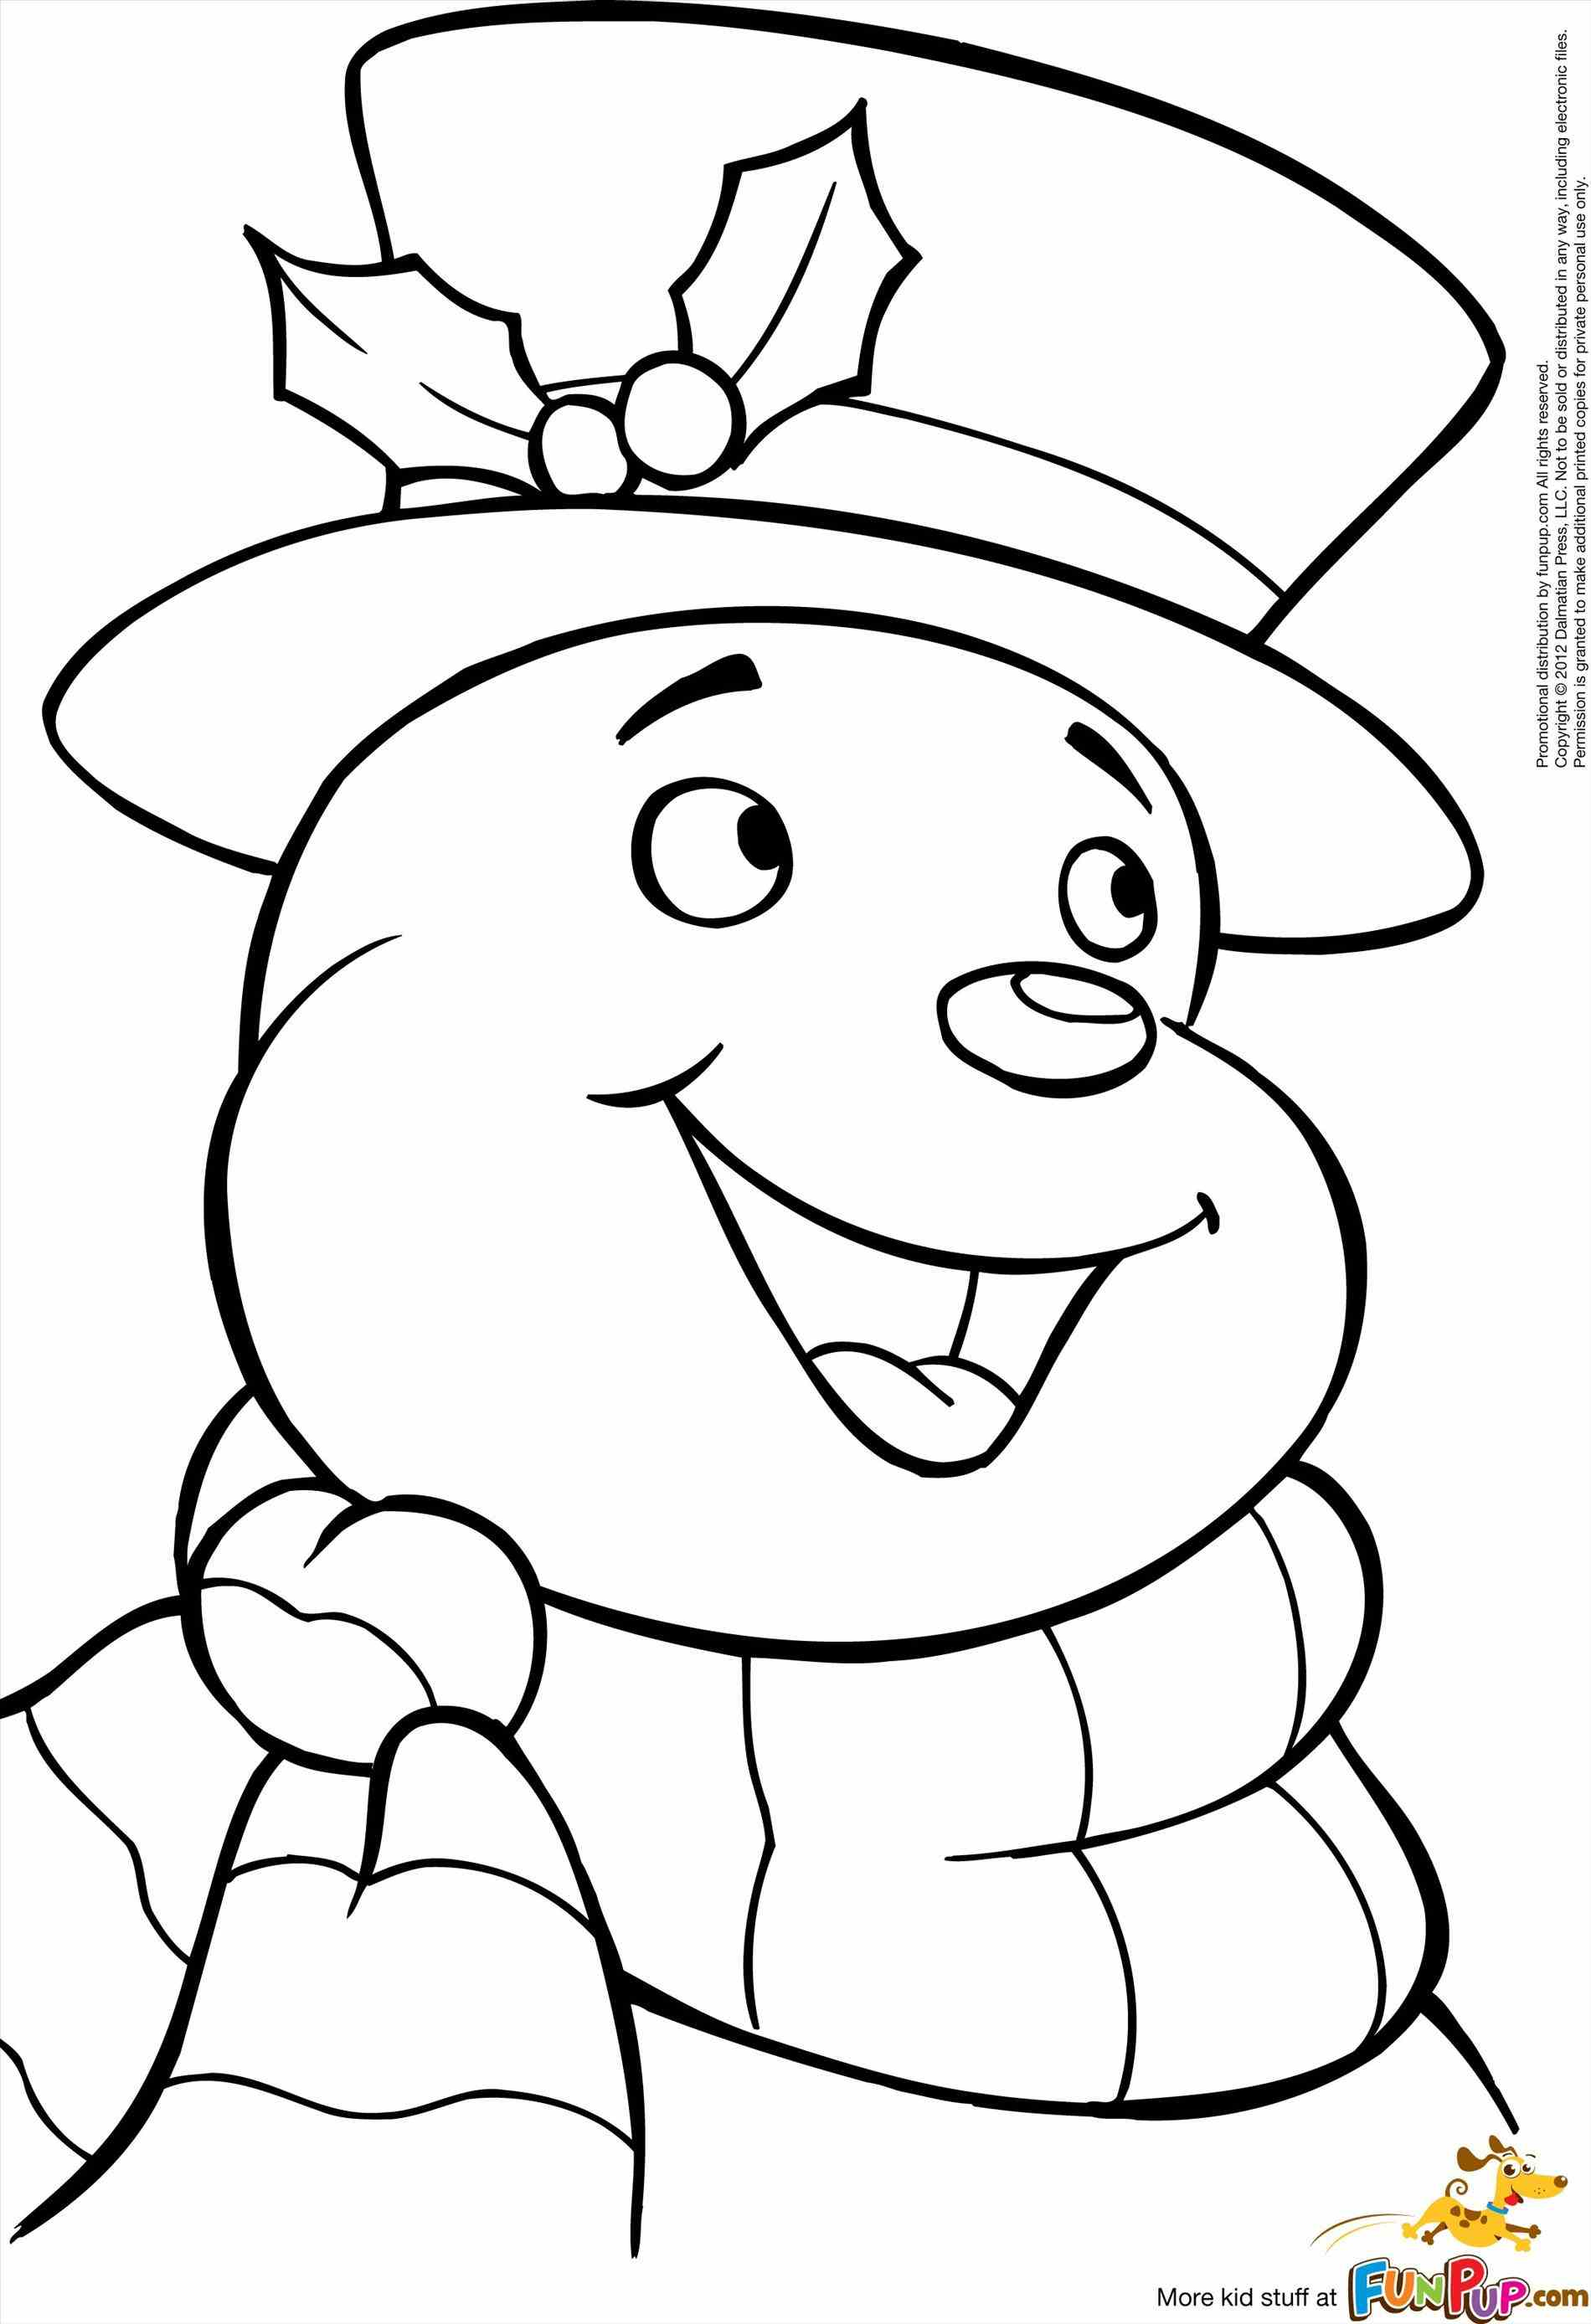 snowman coloring happy snowman in winter coloring page mitraland coloring snowman